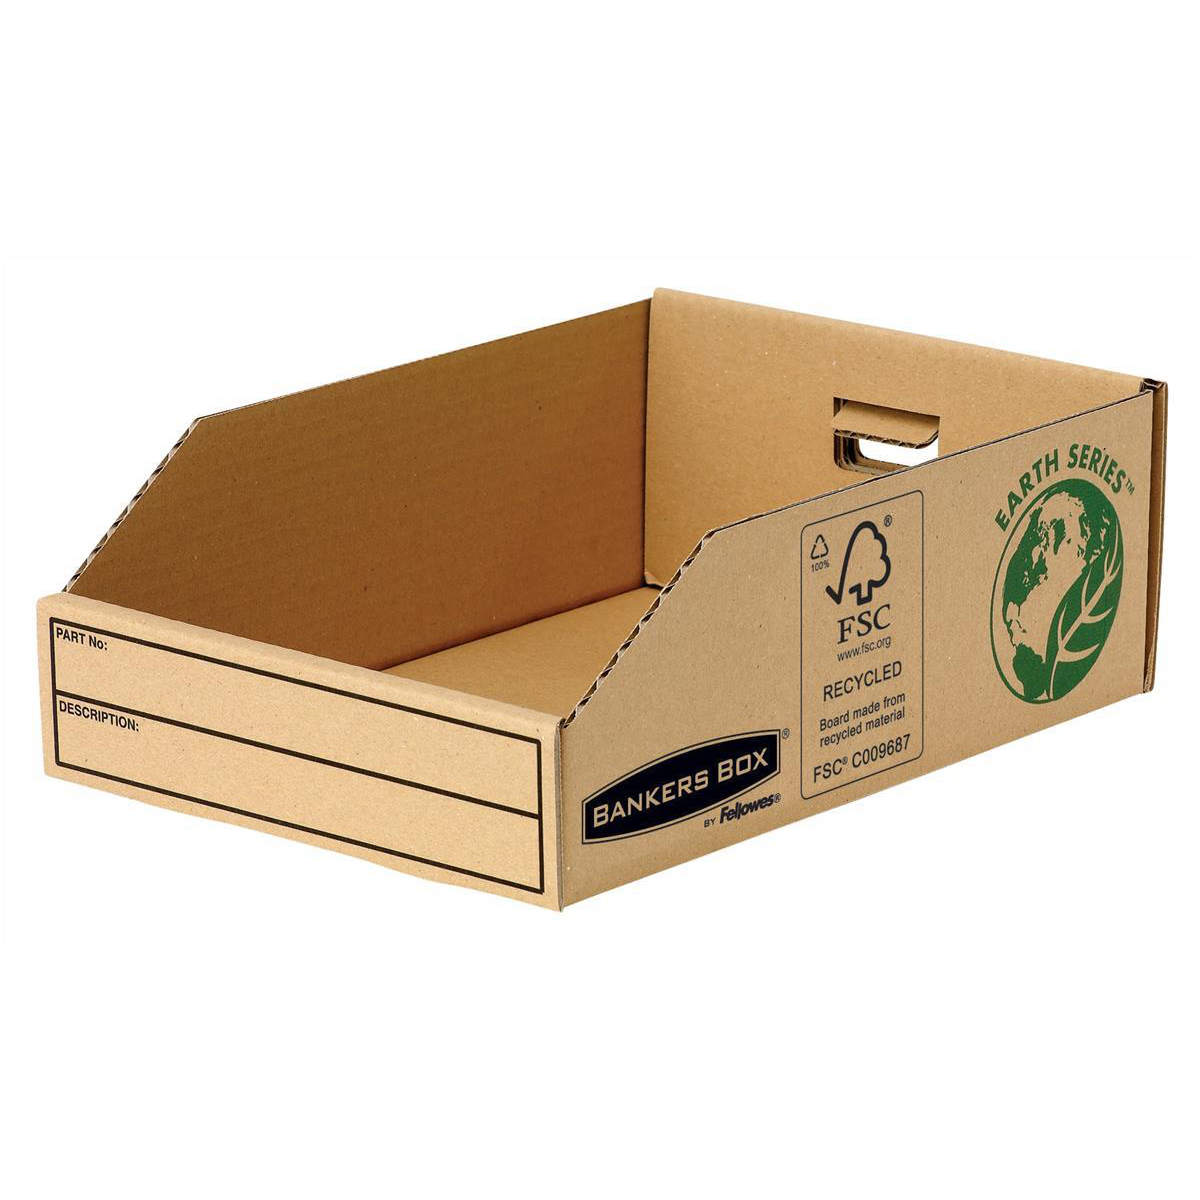 Bankers Box by Fellowes Parts Bin Corrugated Fibreboard Packed Flat W200xD280xH102mm Ref 07355 Pack 50